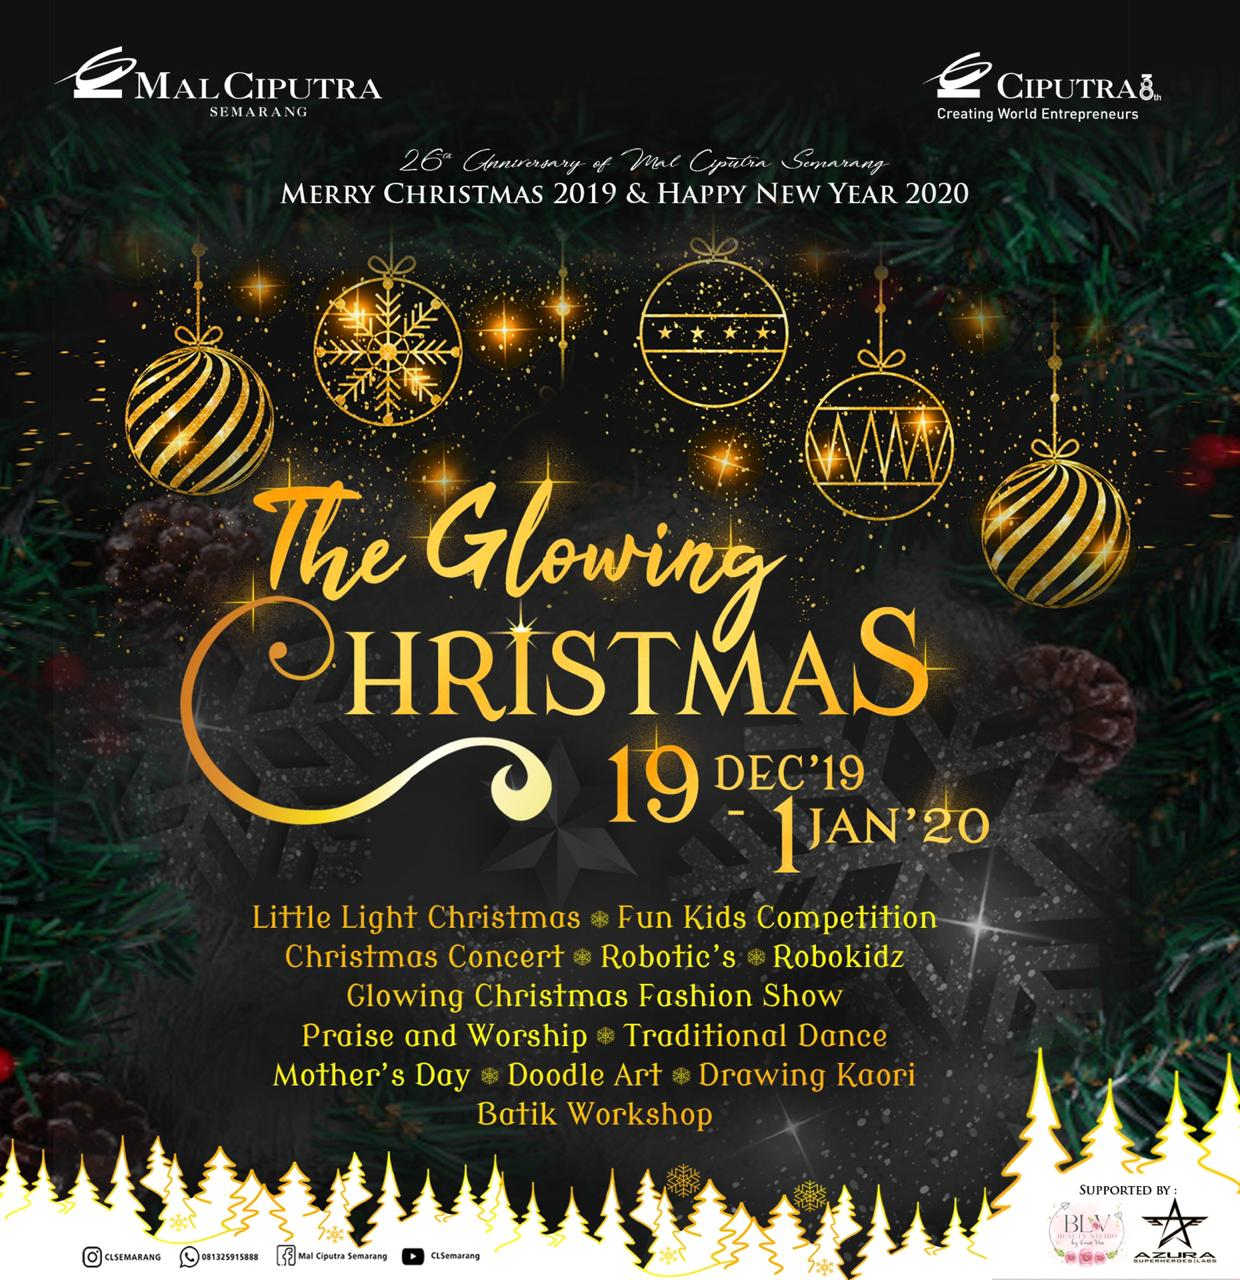 The Glowing Christmas 19 Des 2019 - 1 Jan 2020